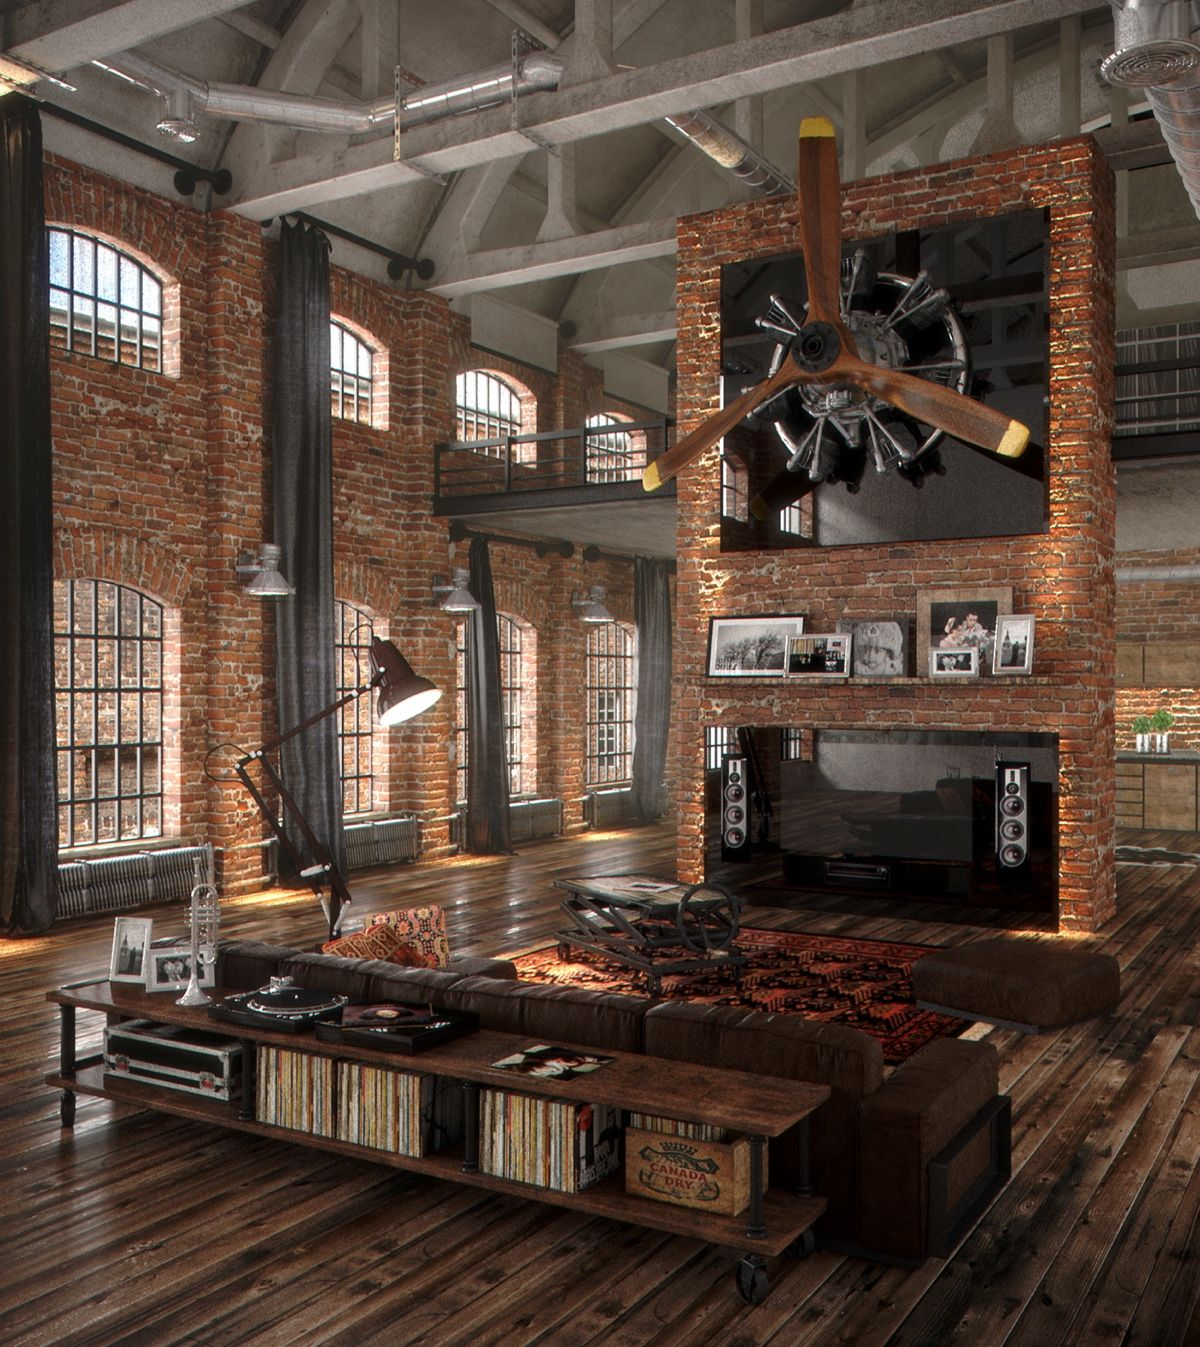 Discussion on this topic: River North Industrial Loft By Haven Design , river-north-industrial-loft-by-haven-design/